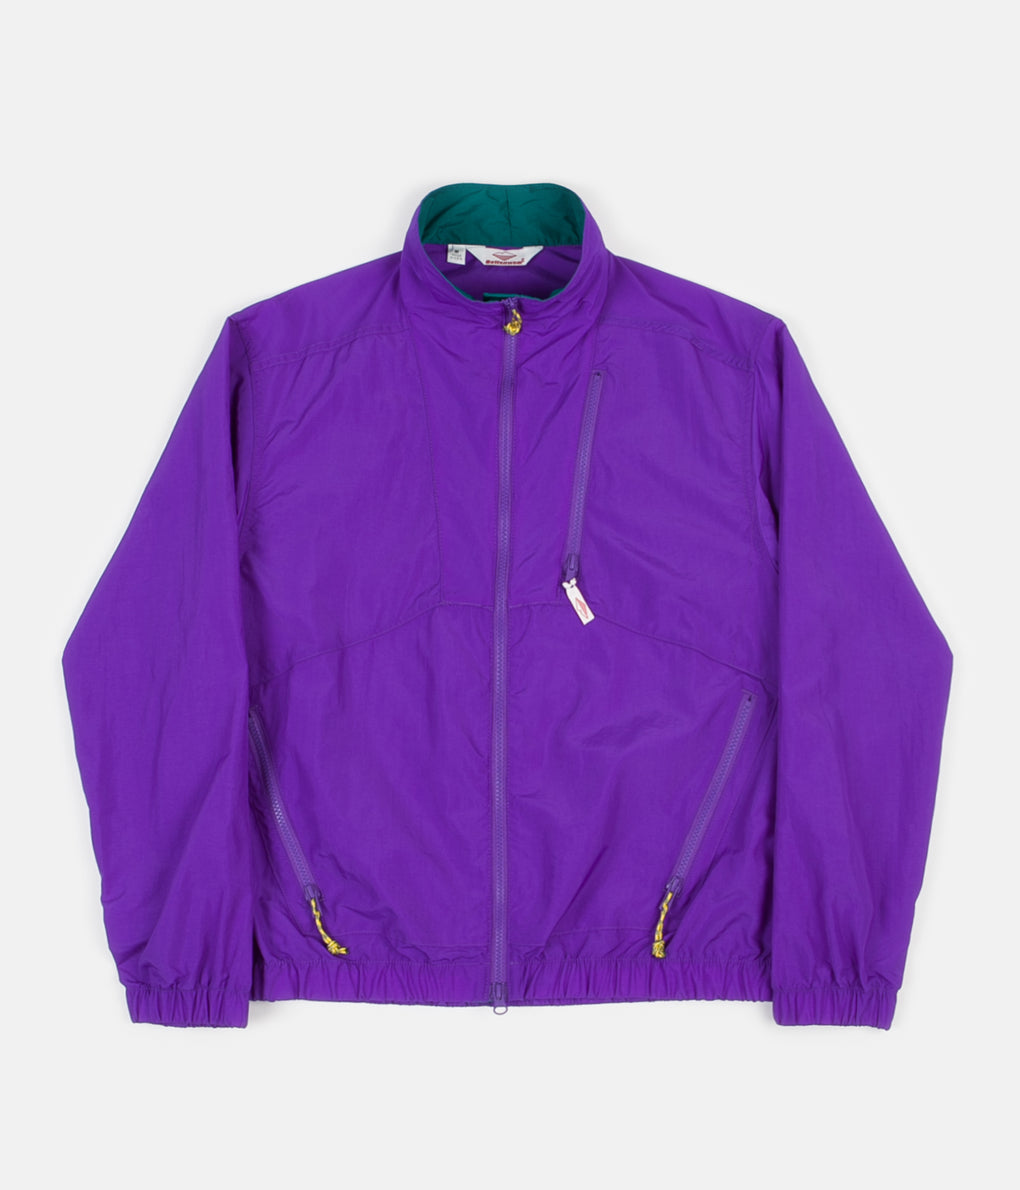 Battenwear Nylon Jump Jacket - Purple / Teal